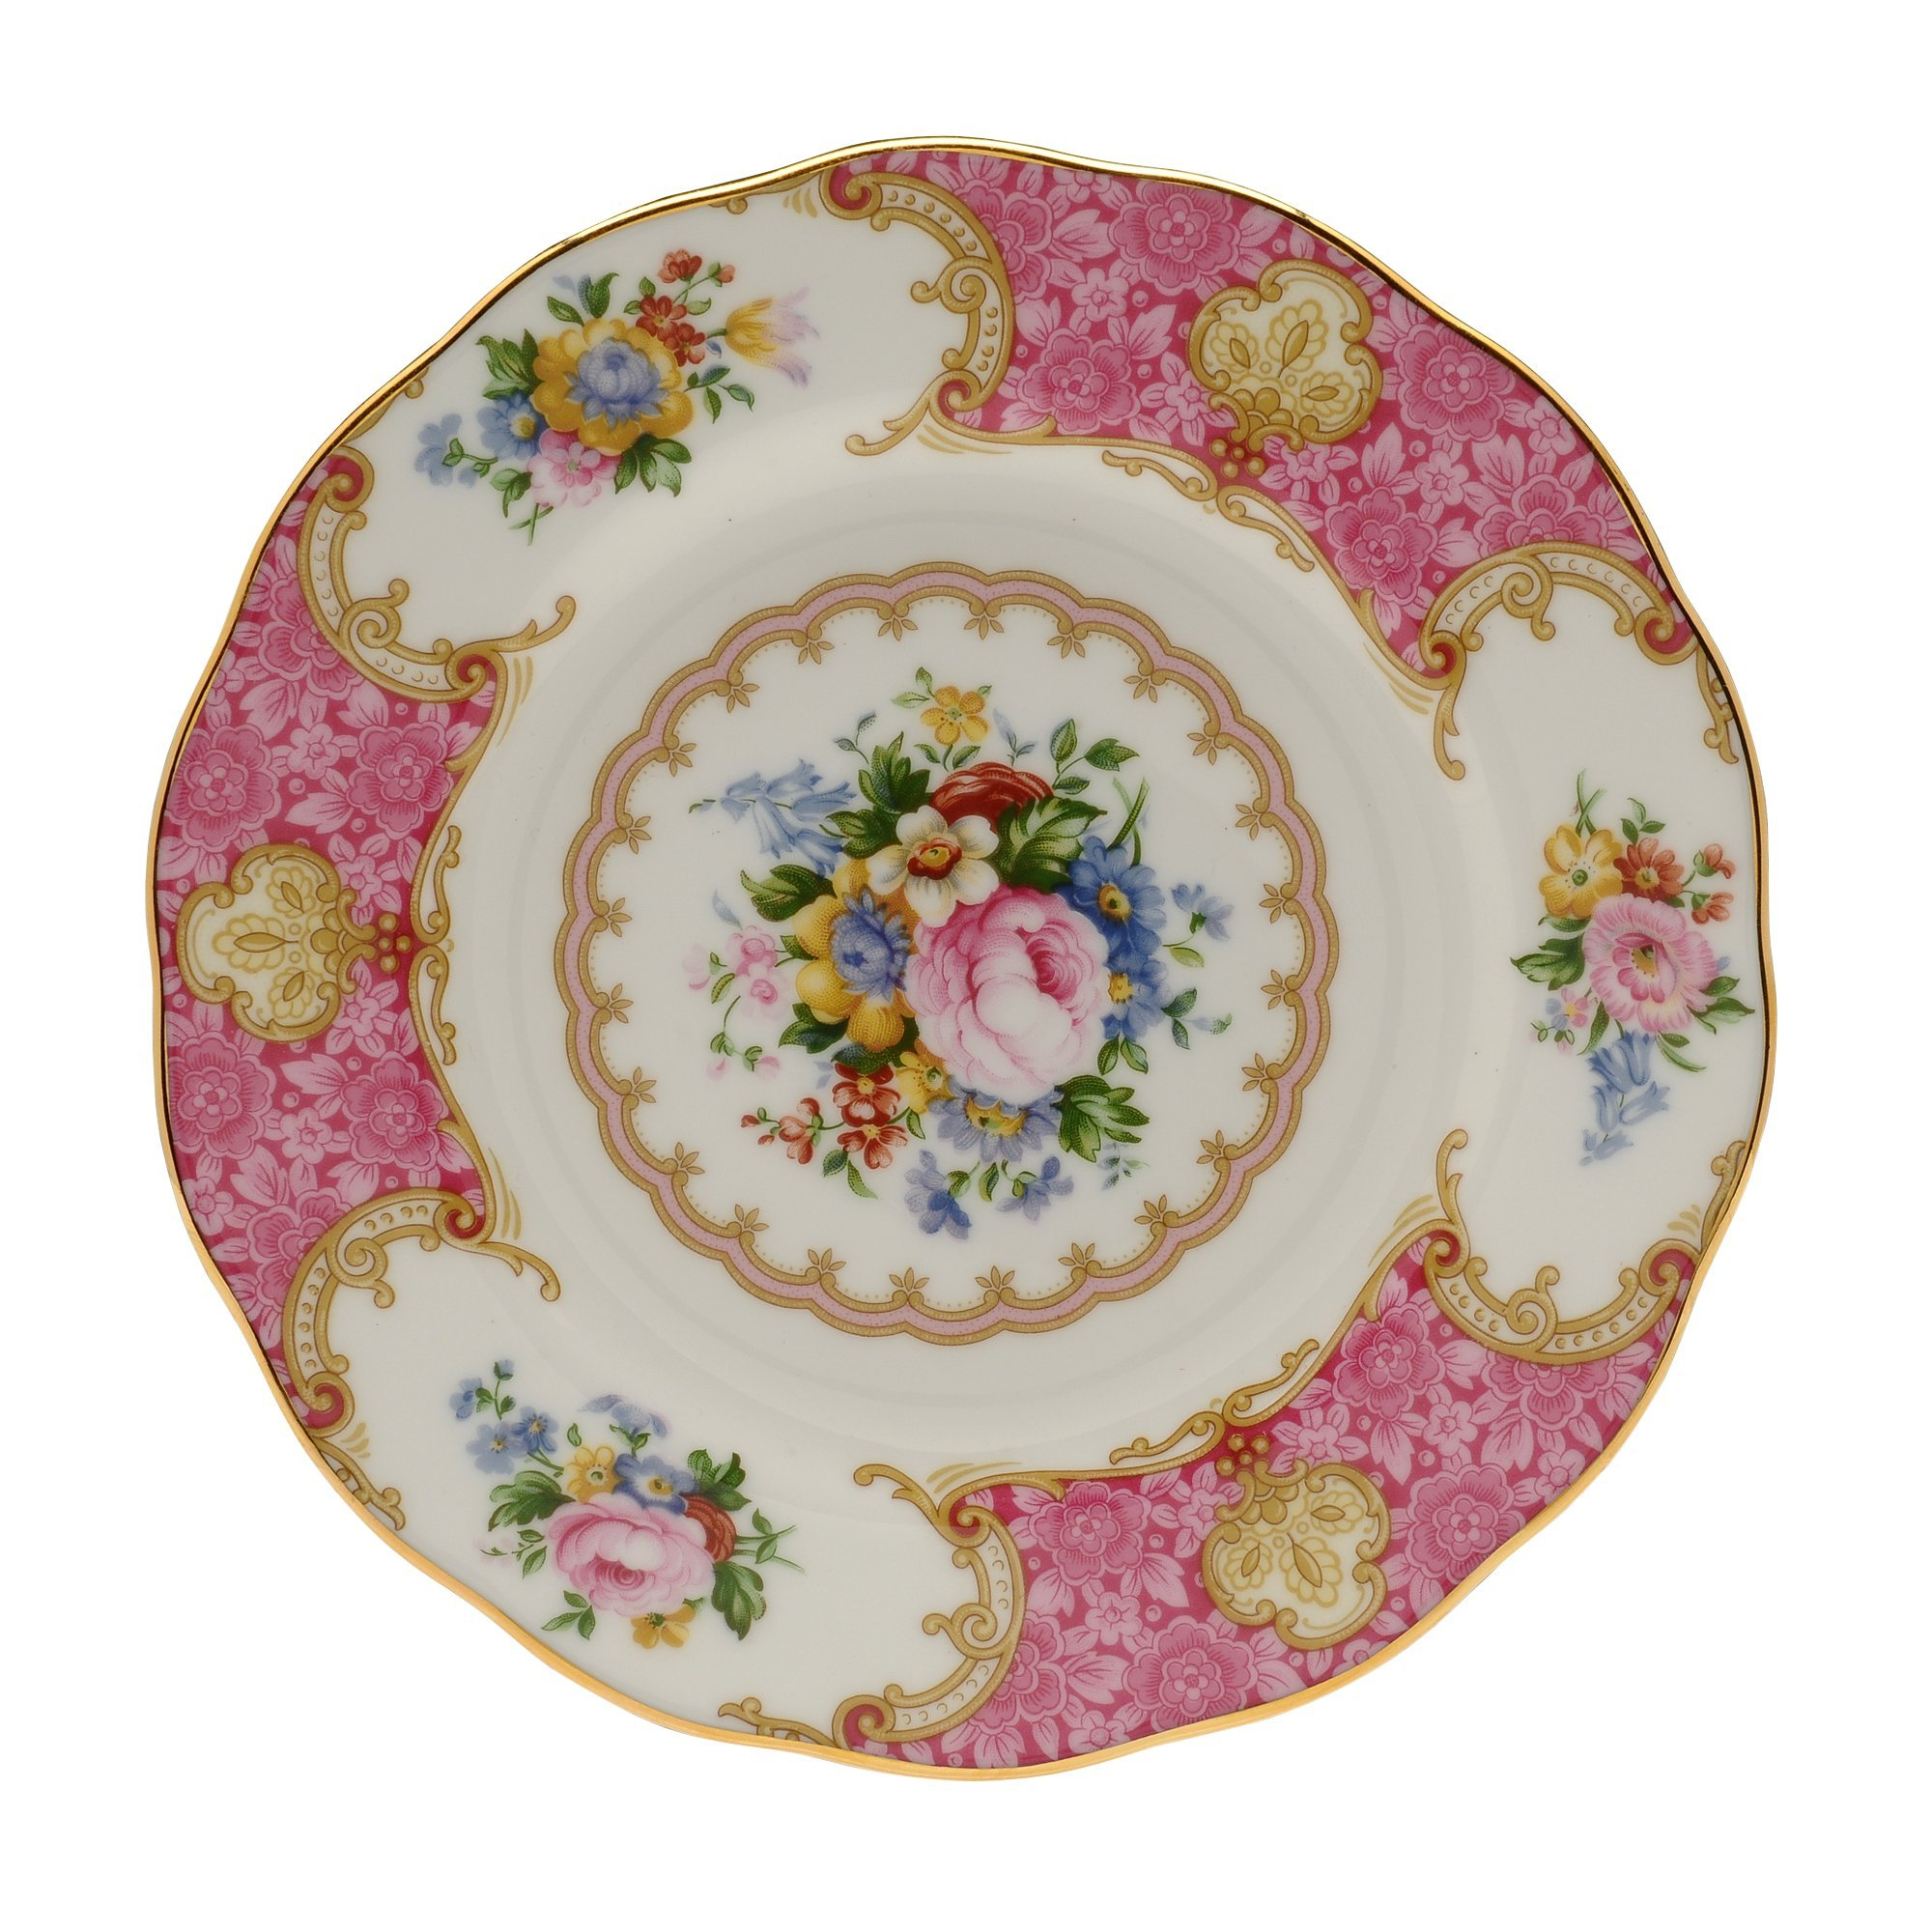 Royal Albert Lady Carlyle Tea Saucer 5-1/2-inches